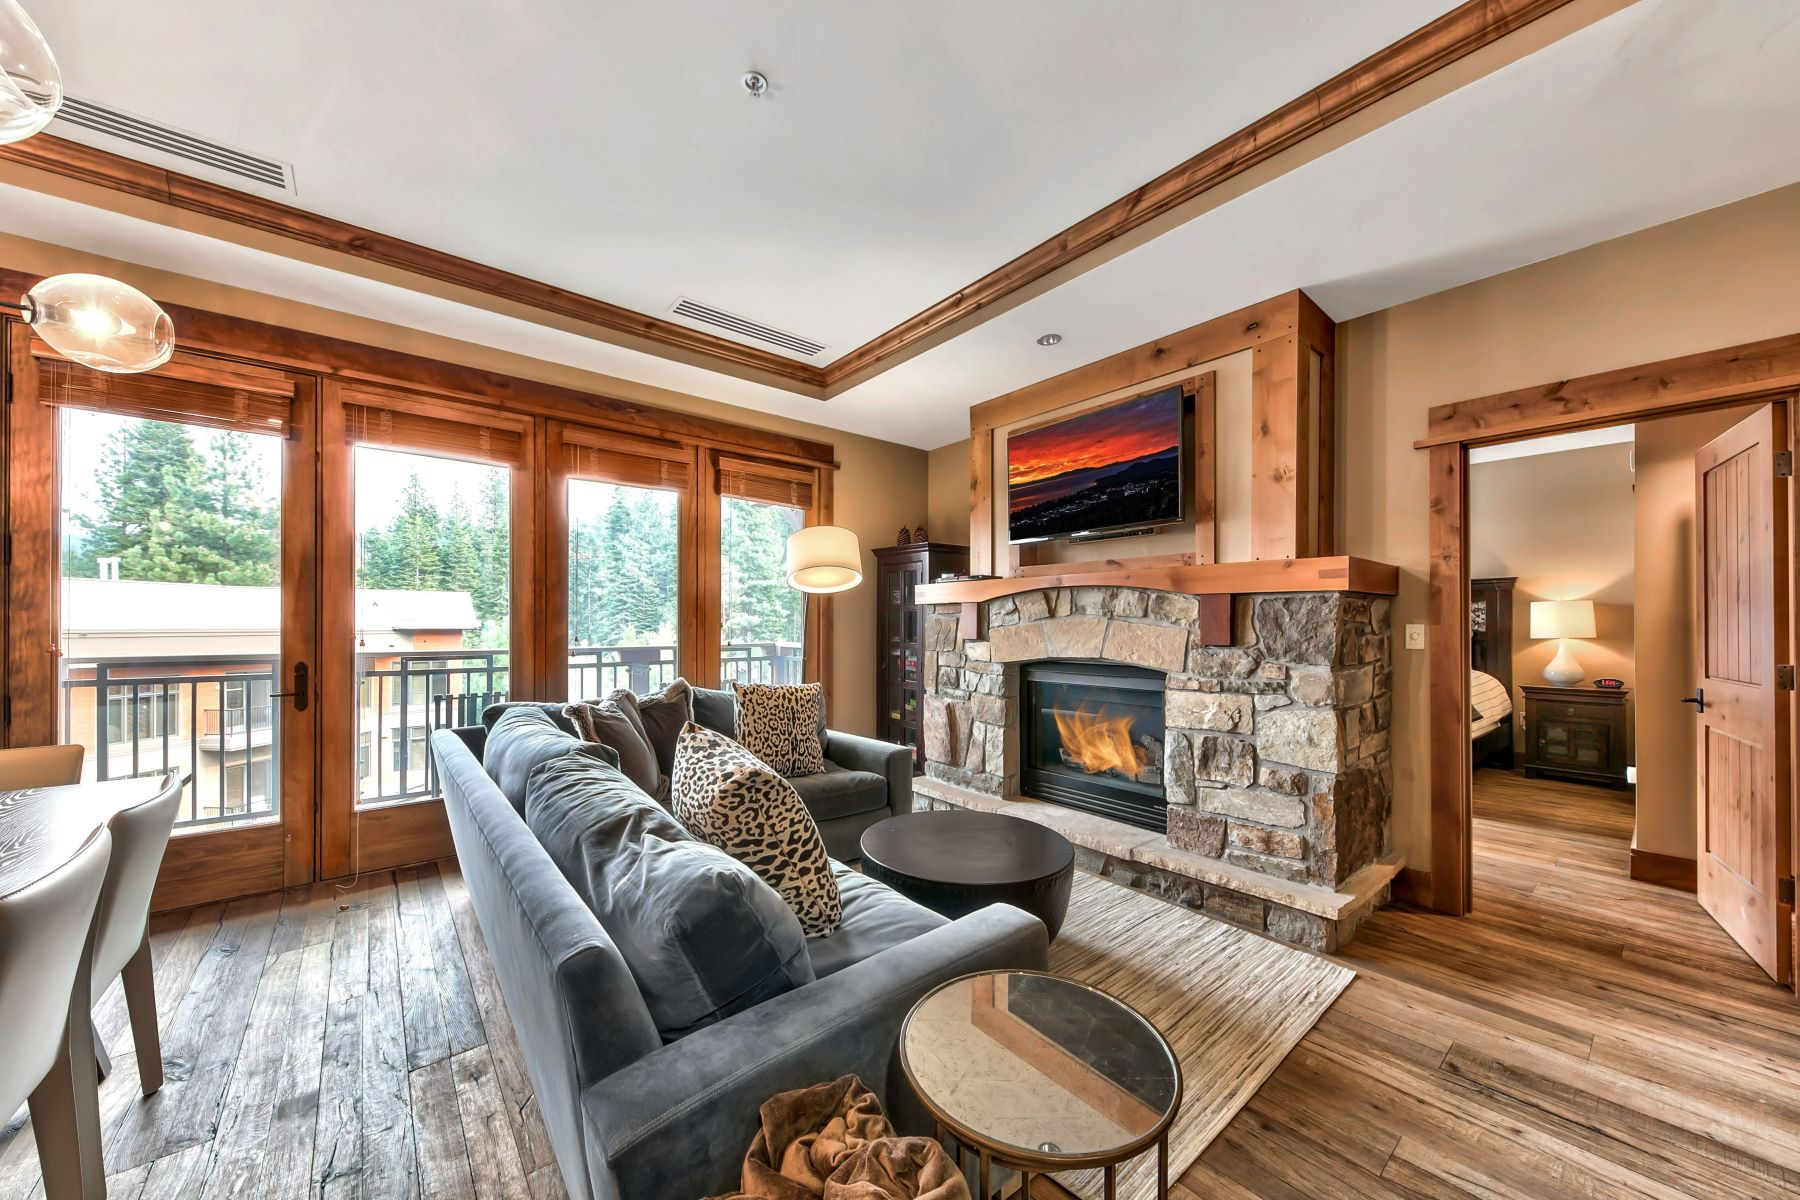 Additional photo for property listing at Ski In Ski Out Luxury Northstar 8001 Northstar Drive #303 Truckee, California 96150 United States